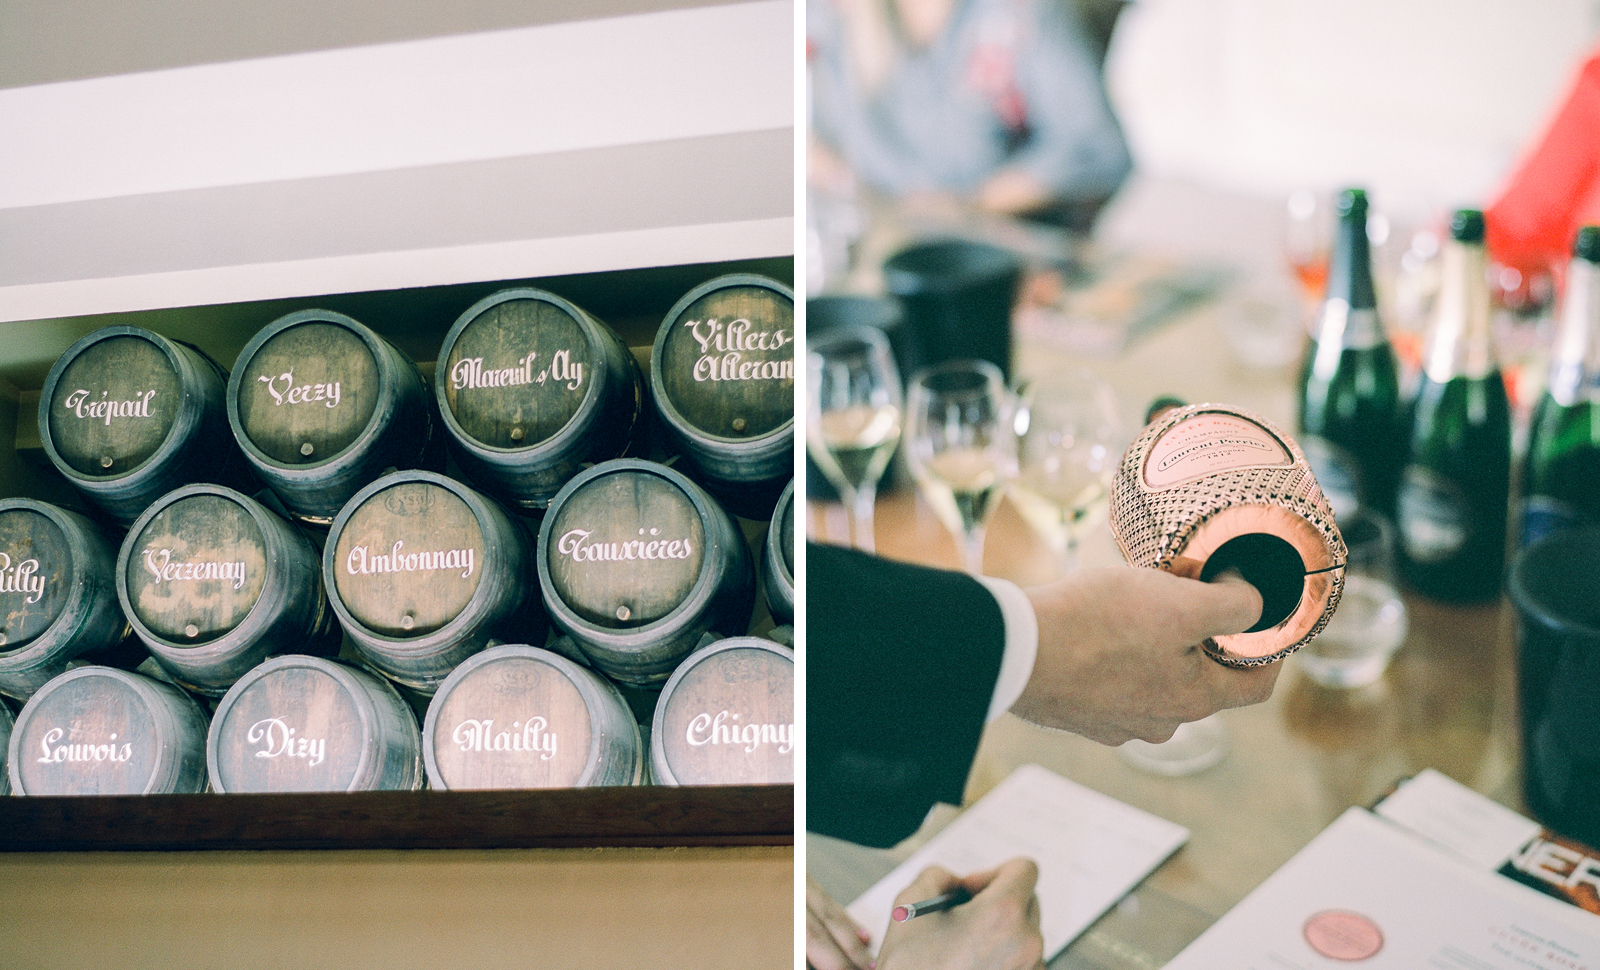 Flutter Magazine Hearts Aflutter Tour - Champagne tasting at Laurent-Perrier in Epernay